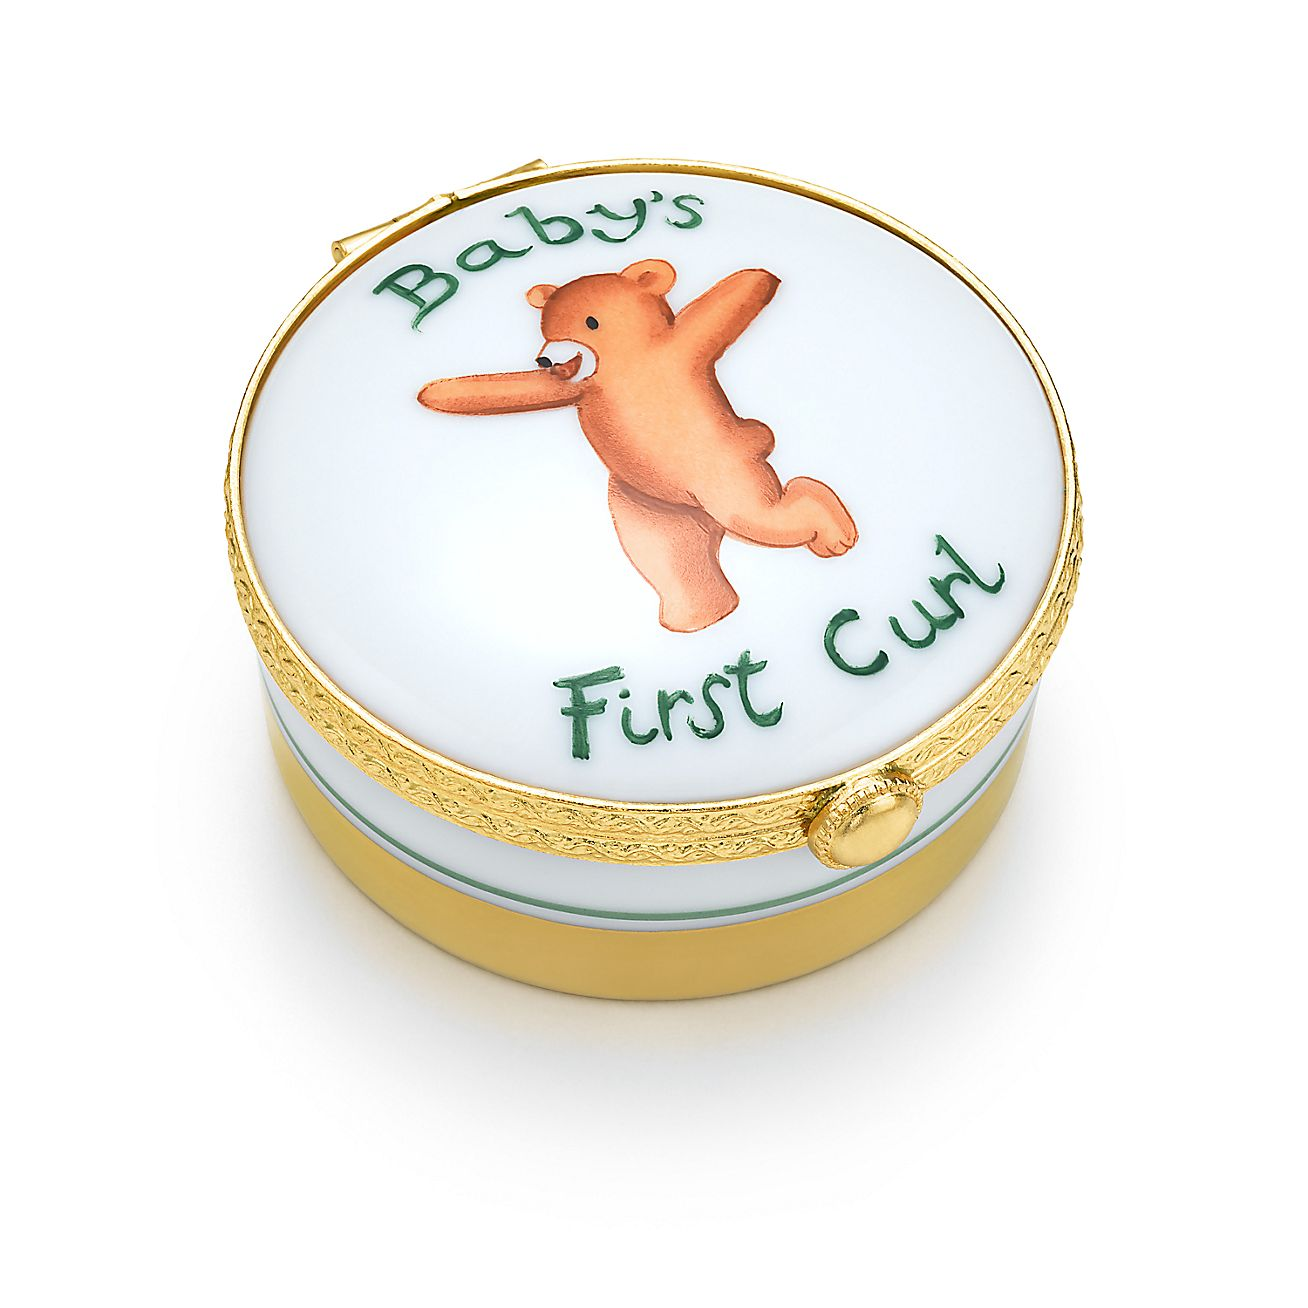 Tiffany Baby Gifts Australia : Baby s first curl box in hand painted limoges porcelain